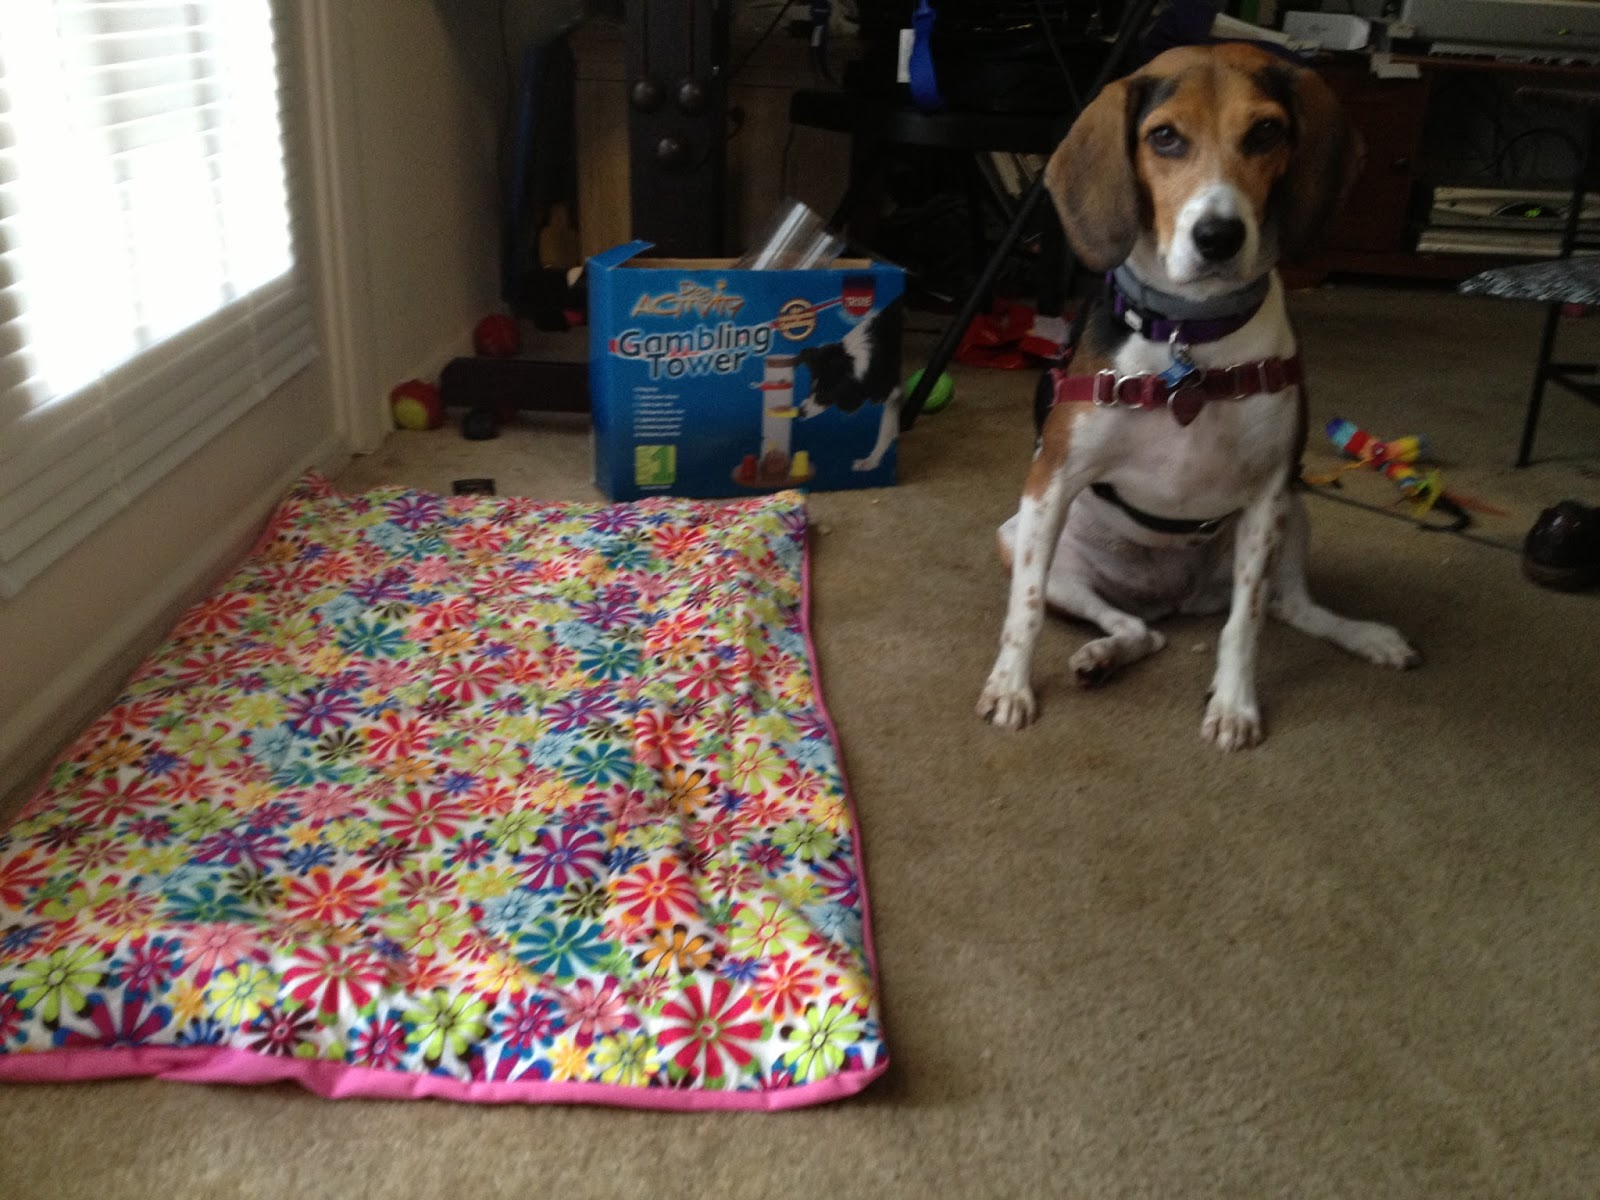 Beagle peeing in house